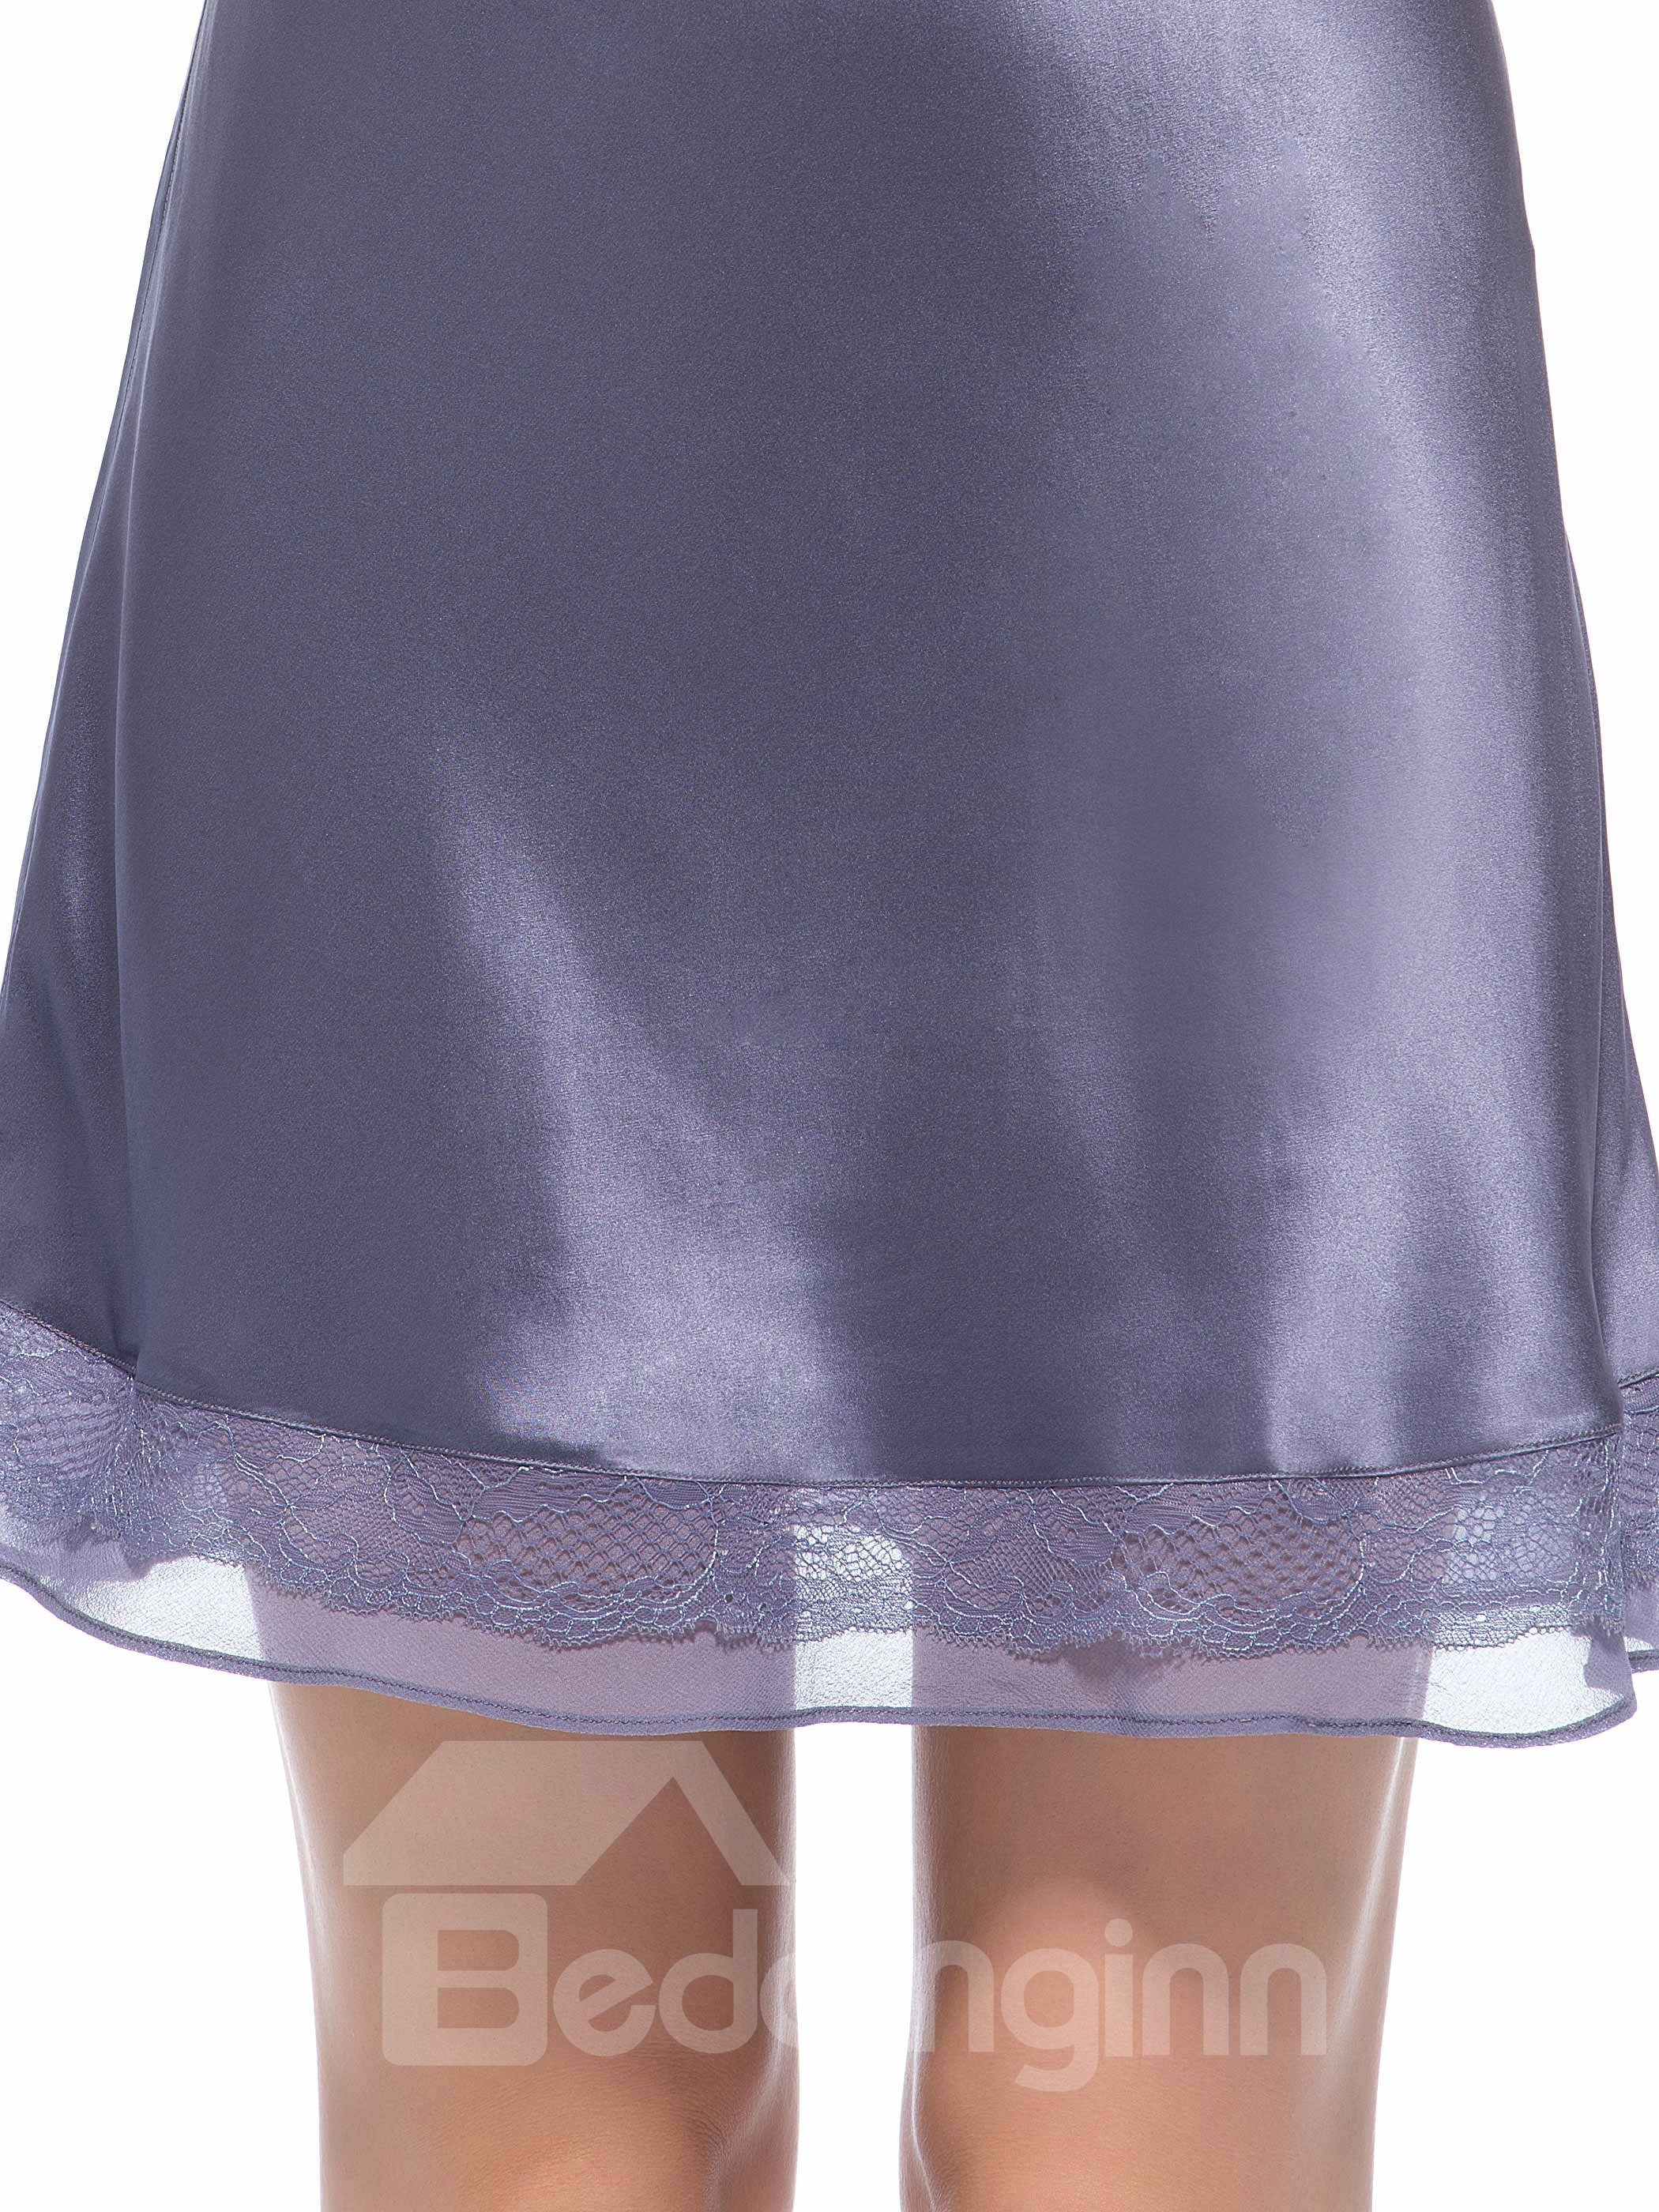 Fancy Lace Strap and Hem Embroidery Between Bust Silk Chemise